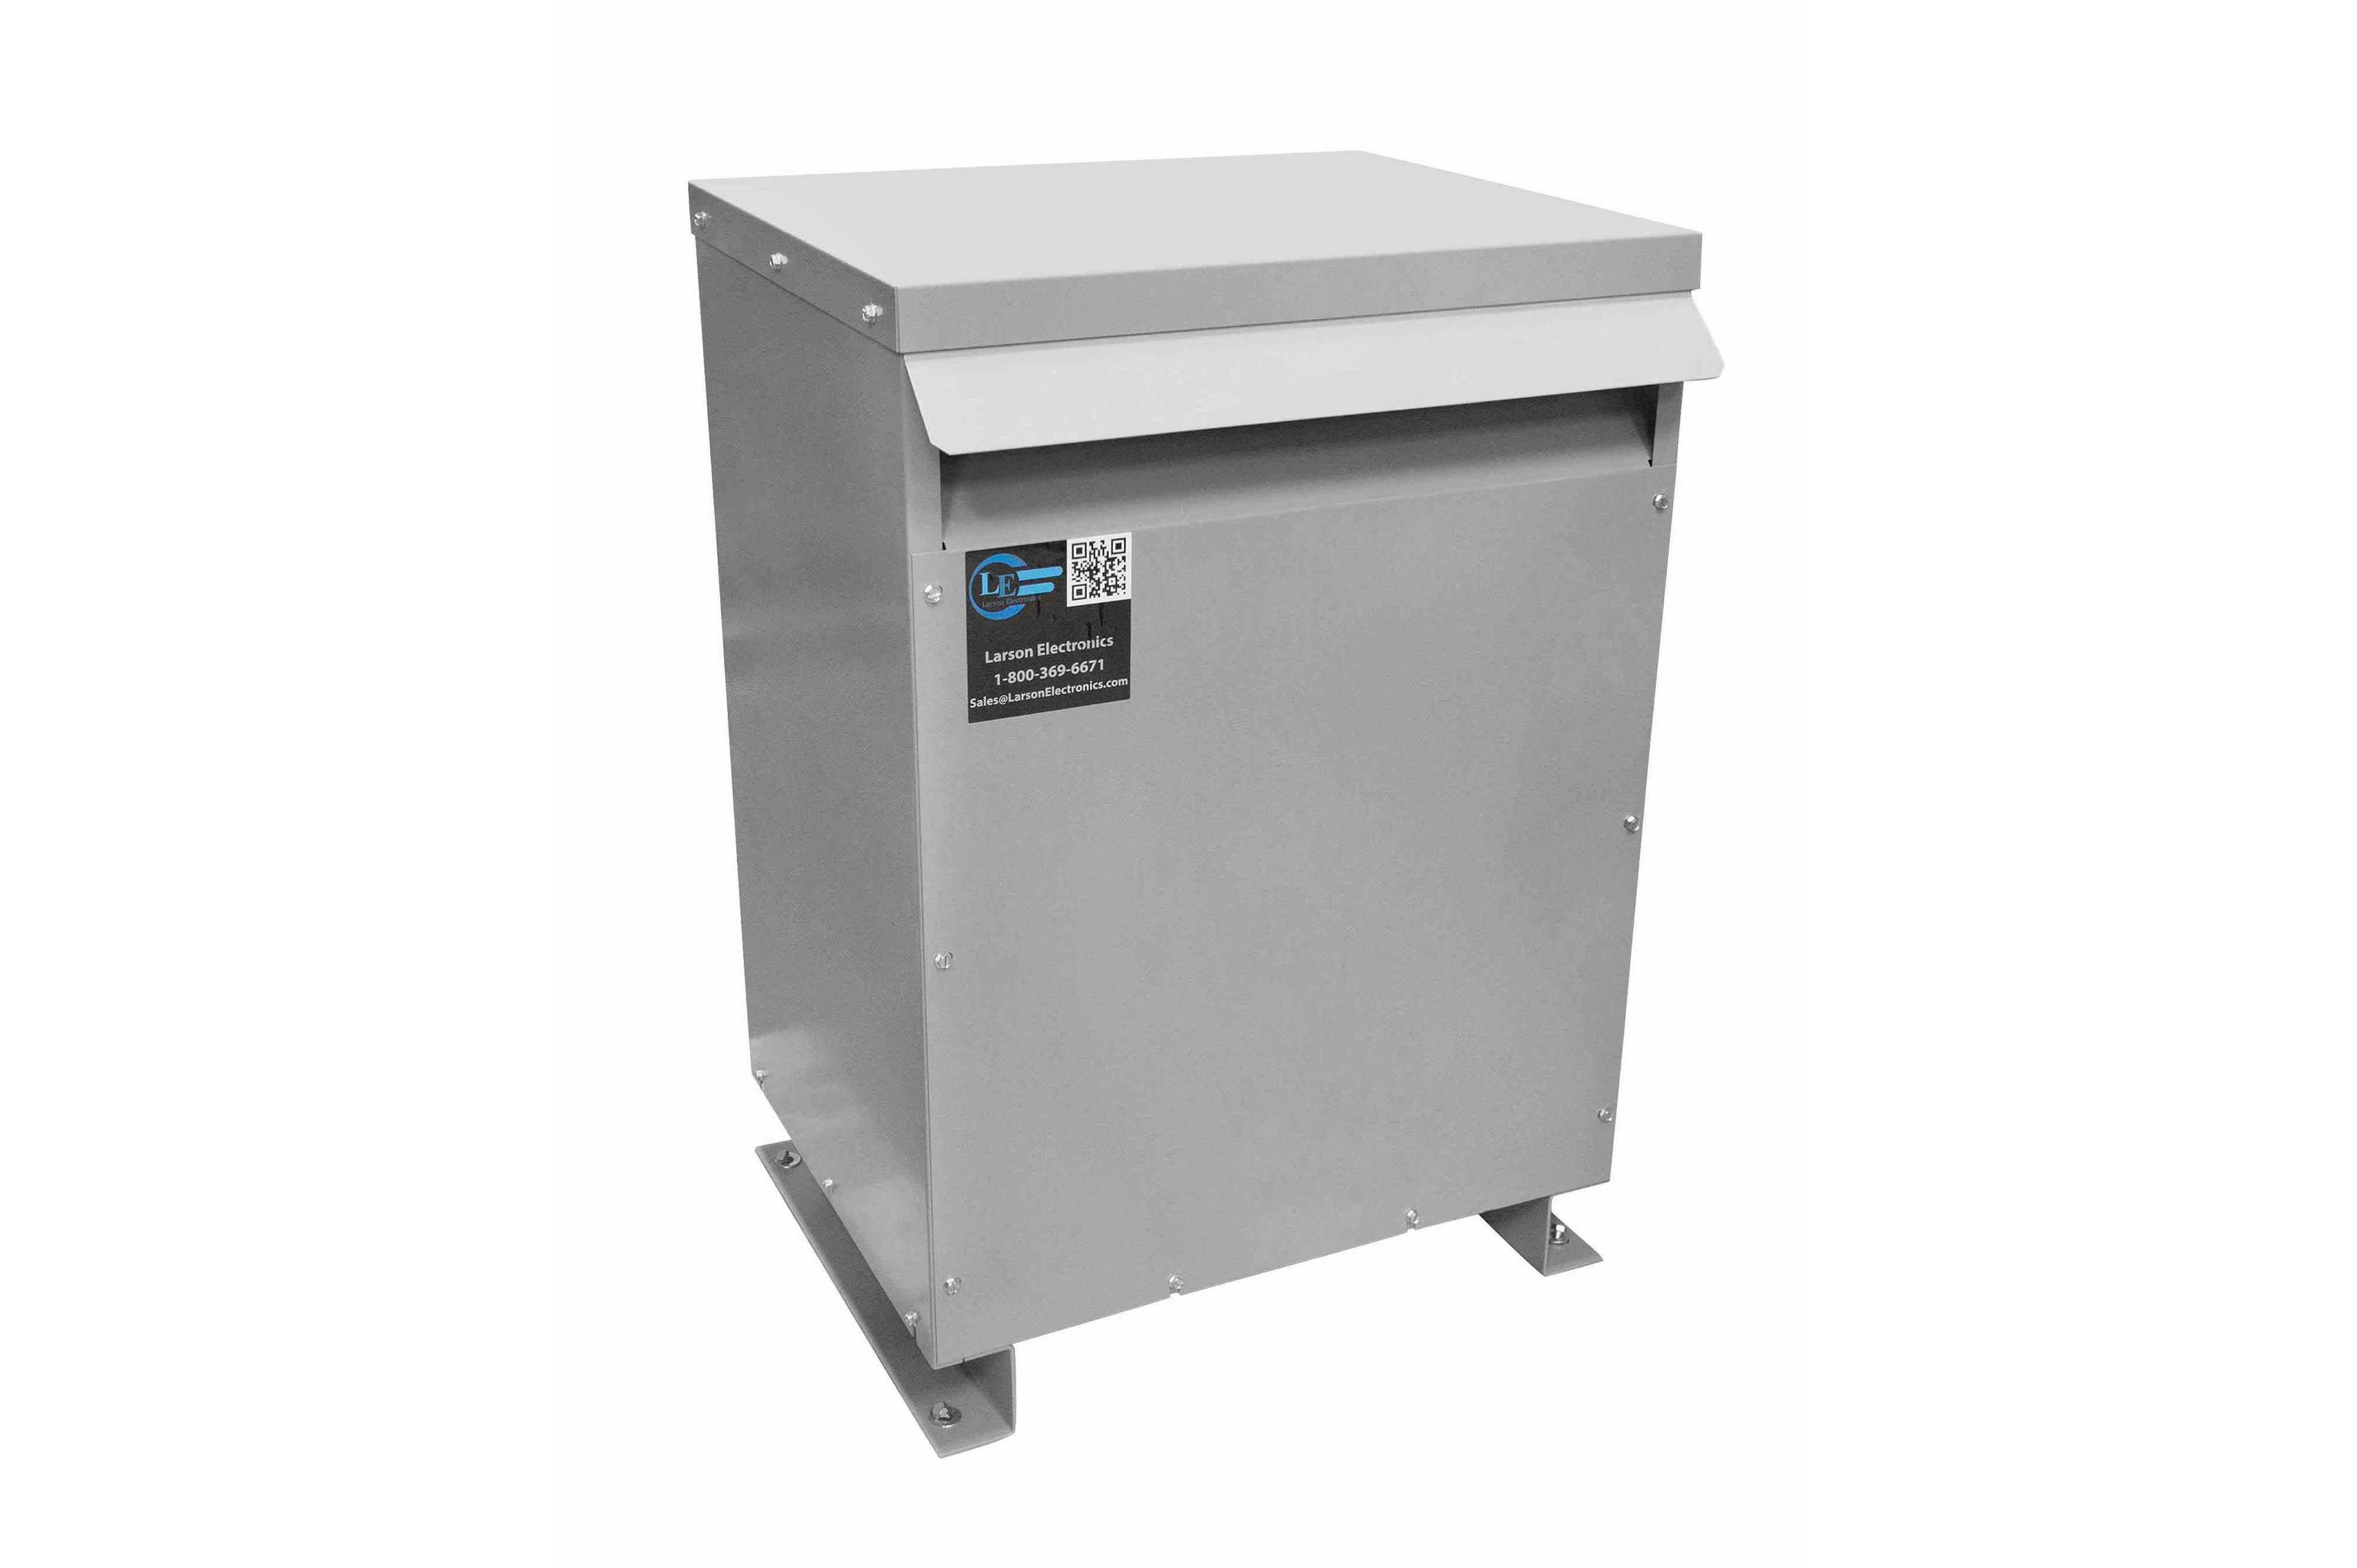 700 kVA 3PH DOE Transformer, 220V Delta Primary, 208Y/120 Wye-N Secondary, N3R, Ventilated, 60 Hz